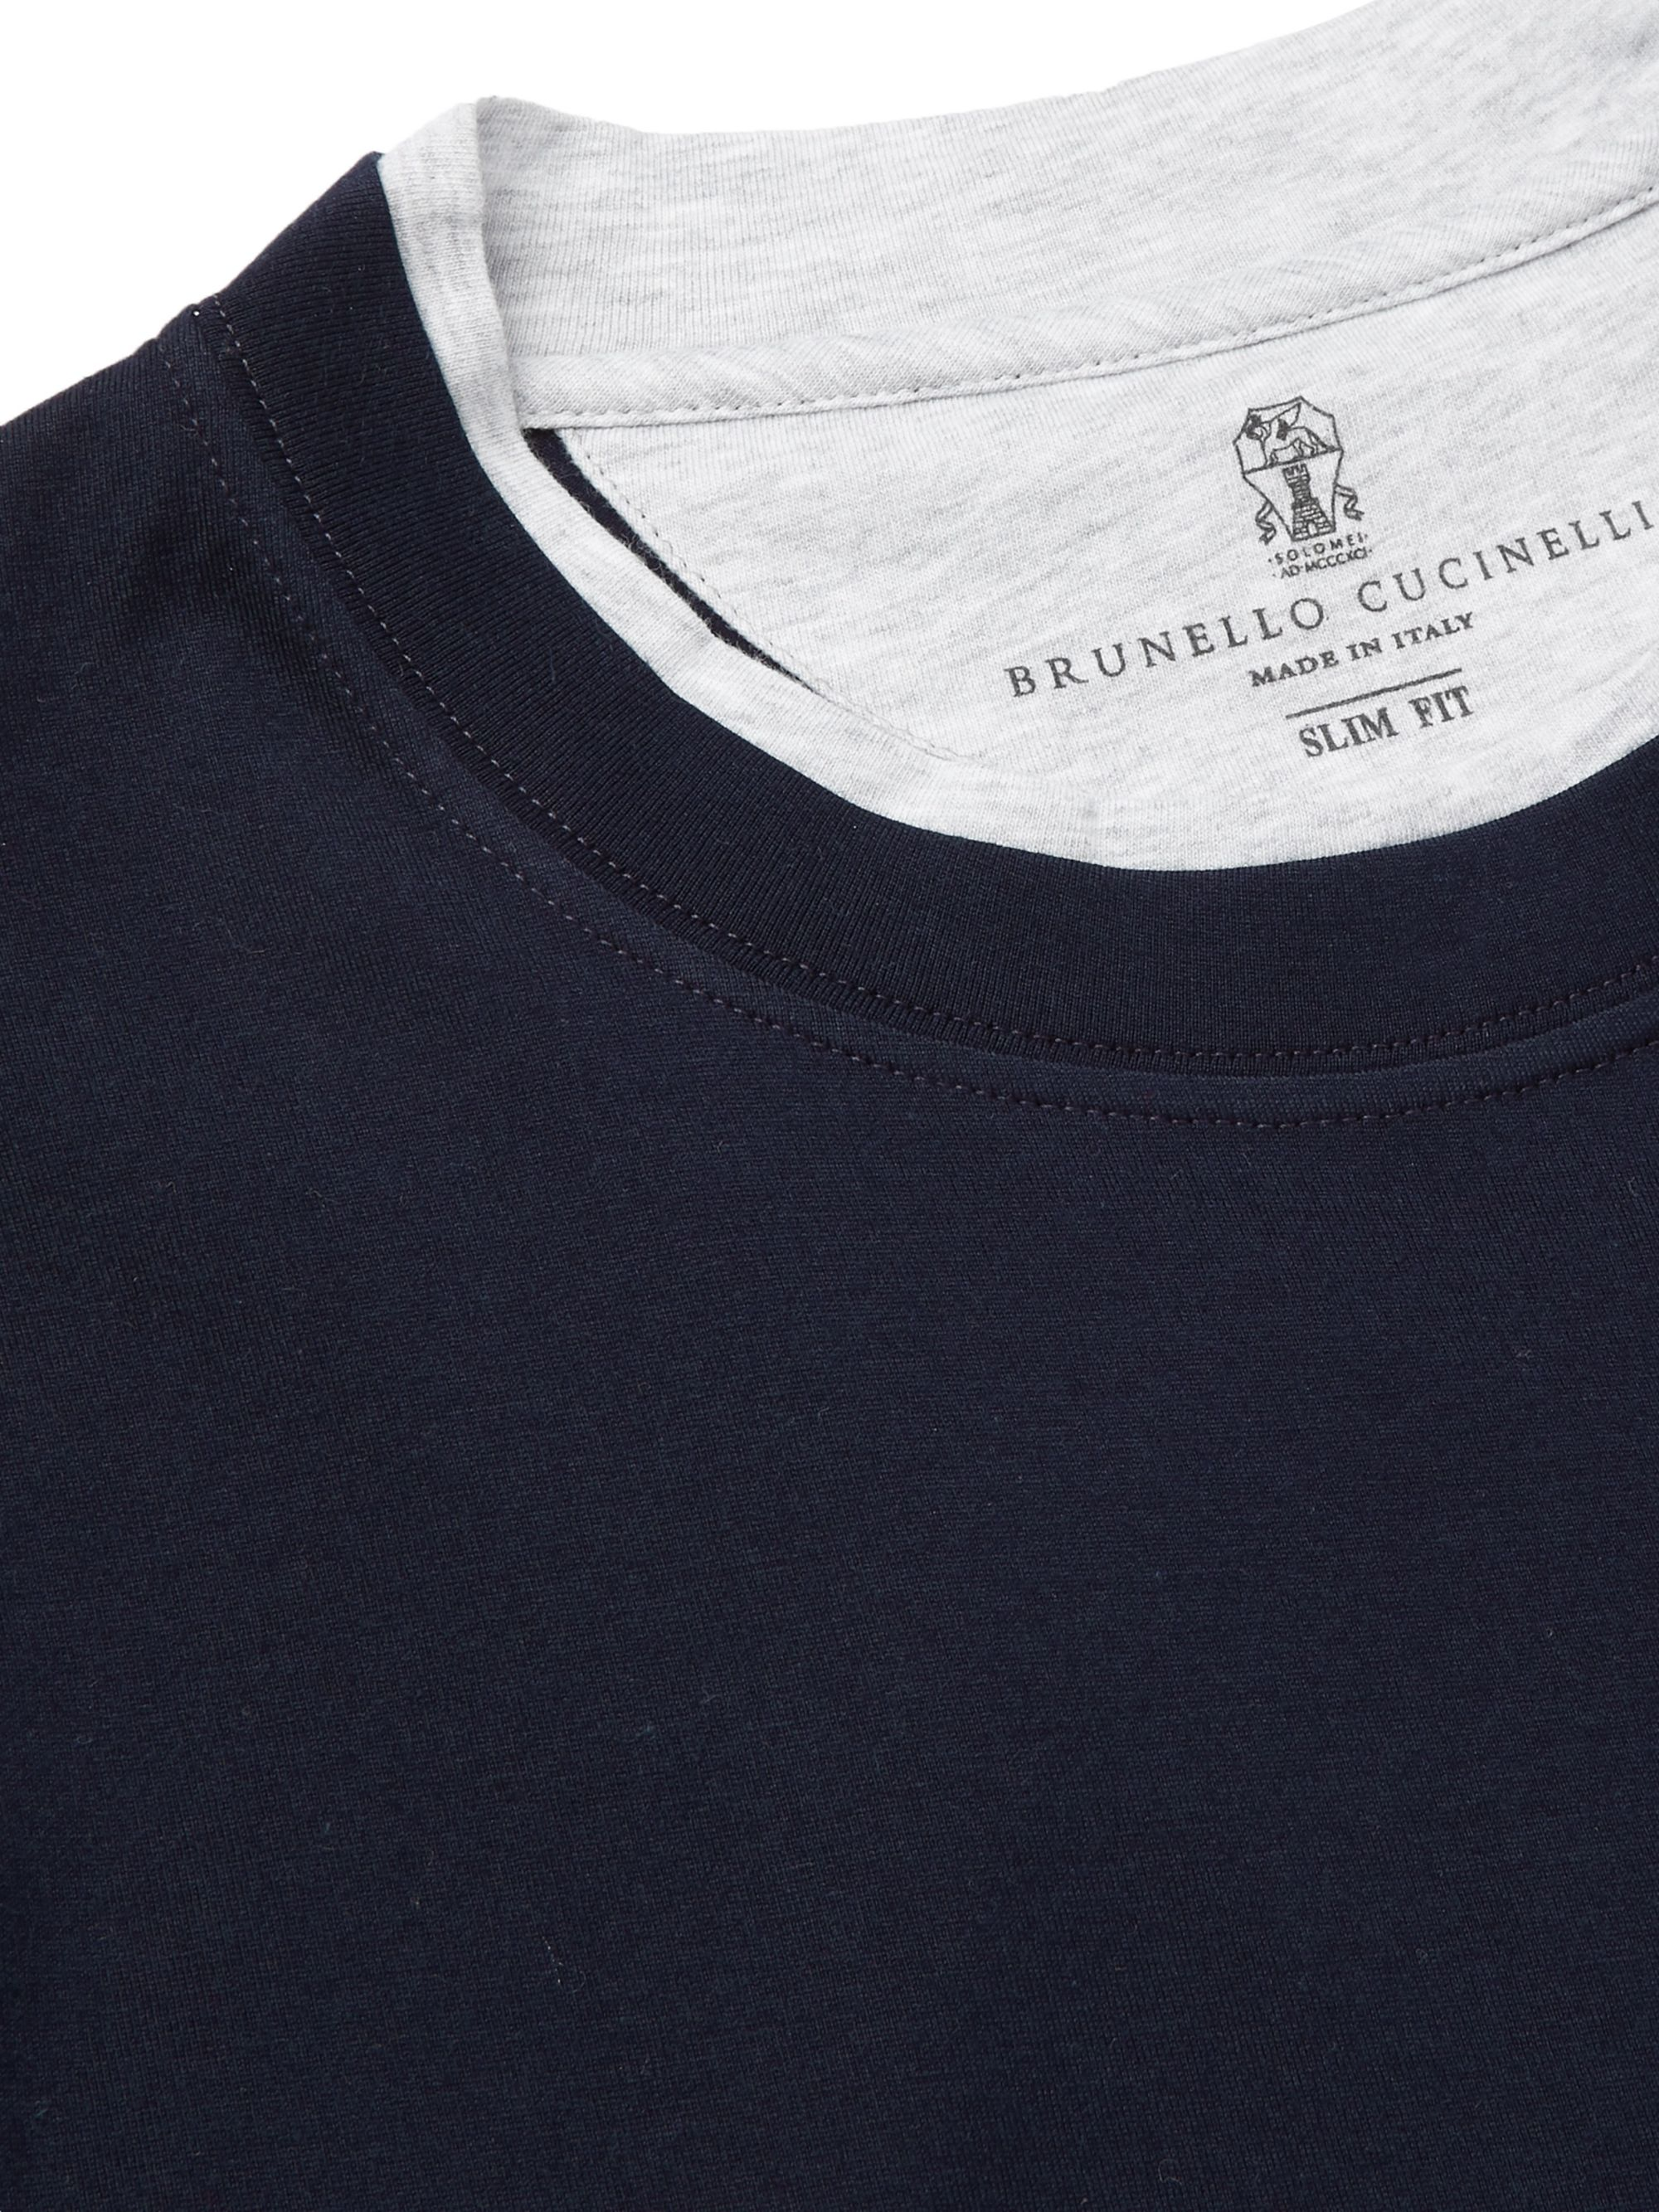 Brunello Cucinelli Slim-Fit Layered Cotton-Jersey T-Shirt